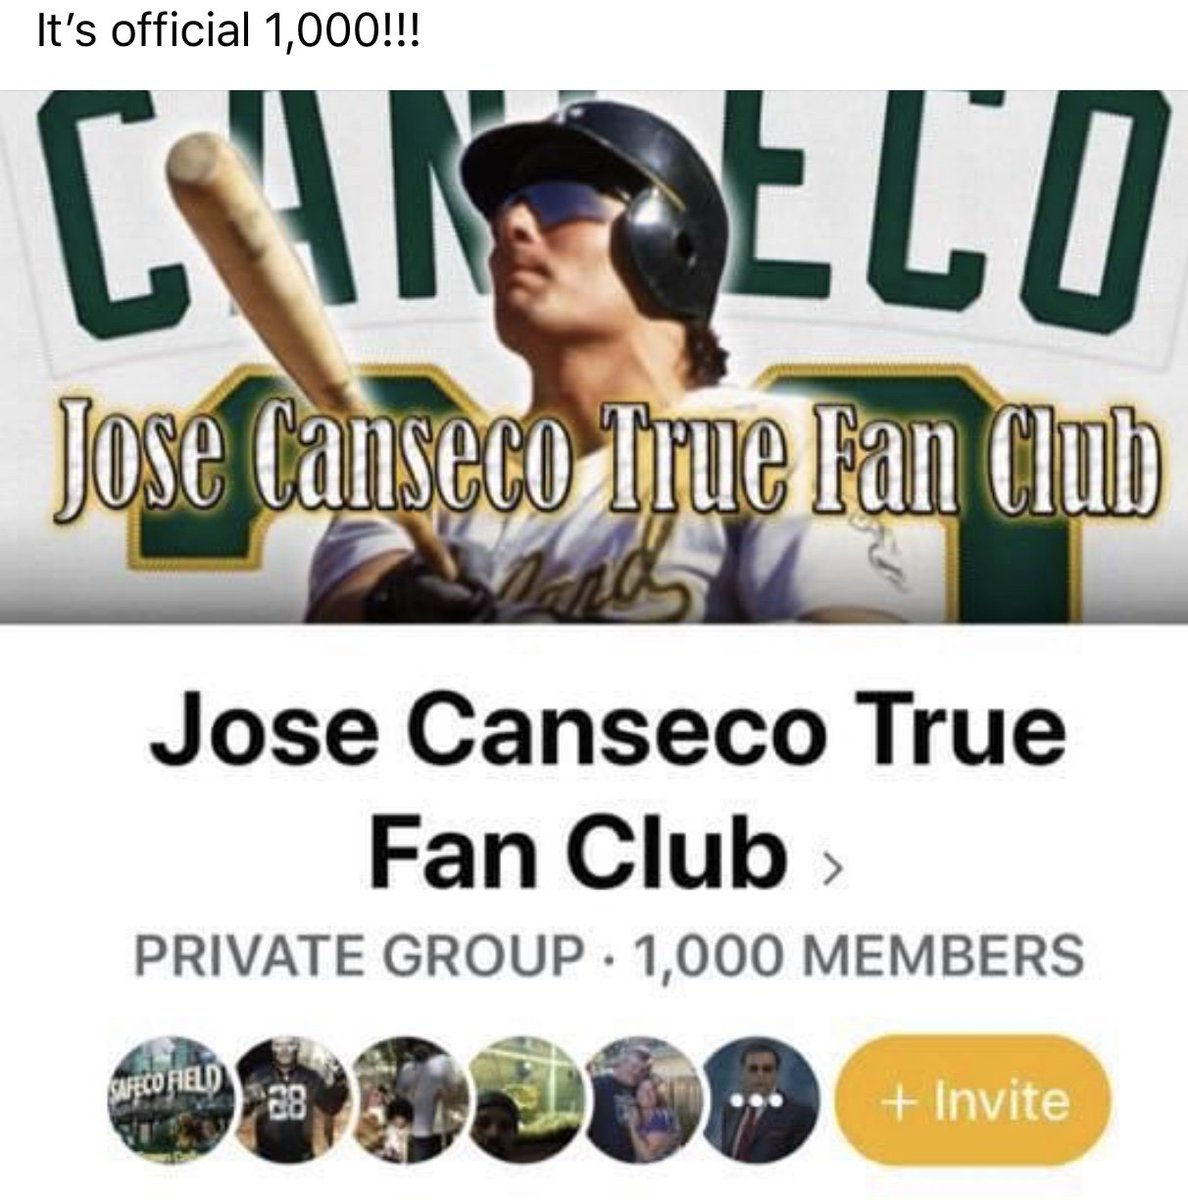 Jose Canseco (@JoseCanseco) on Twitter photo 24/05/2020 03:02:45